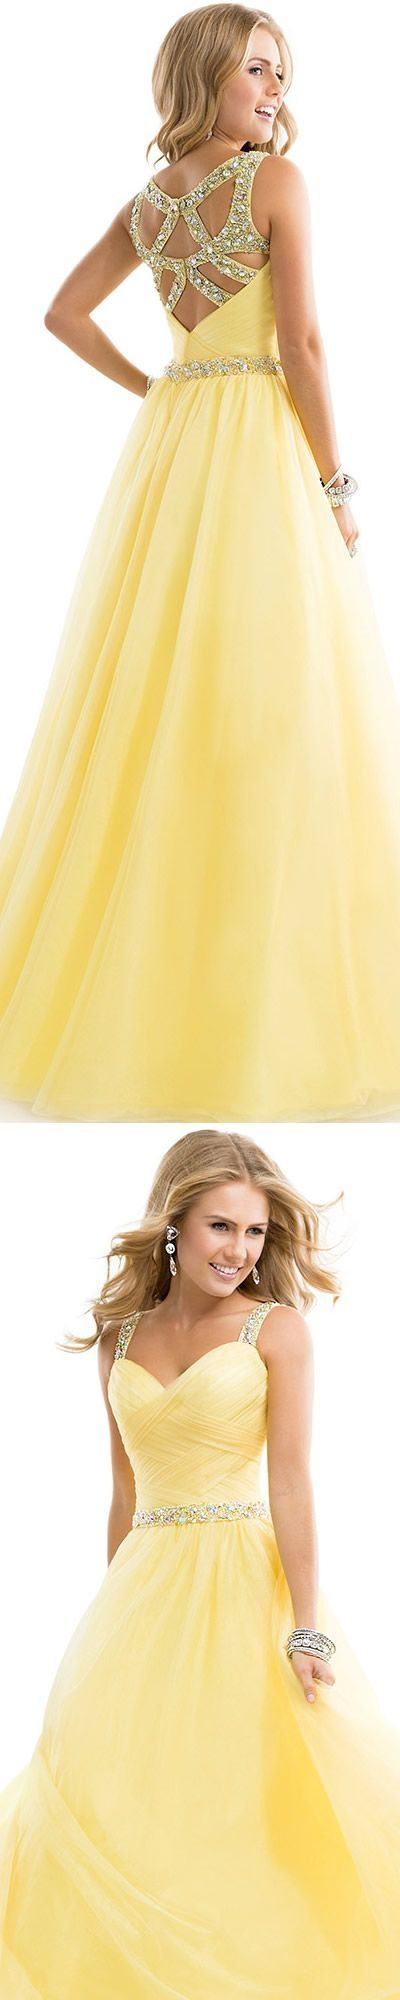 Beading Embellishment Straps Floor Length Yellow Prom Dress Prom Dress Tulle Ball Gown With Jeweled Straps Yellow Open Back evening dresses,yellow party dress,backless evening gown,long prom dresses